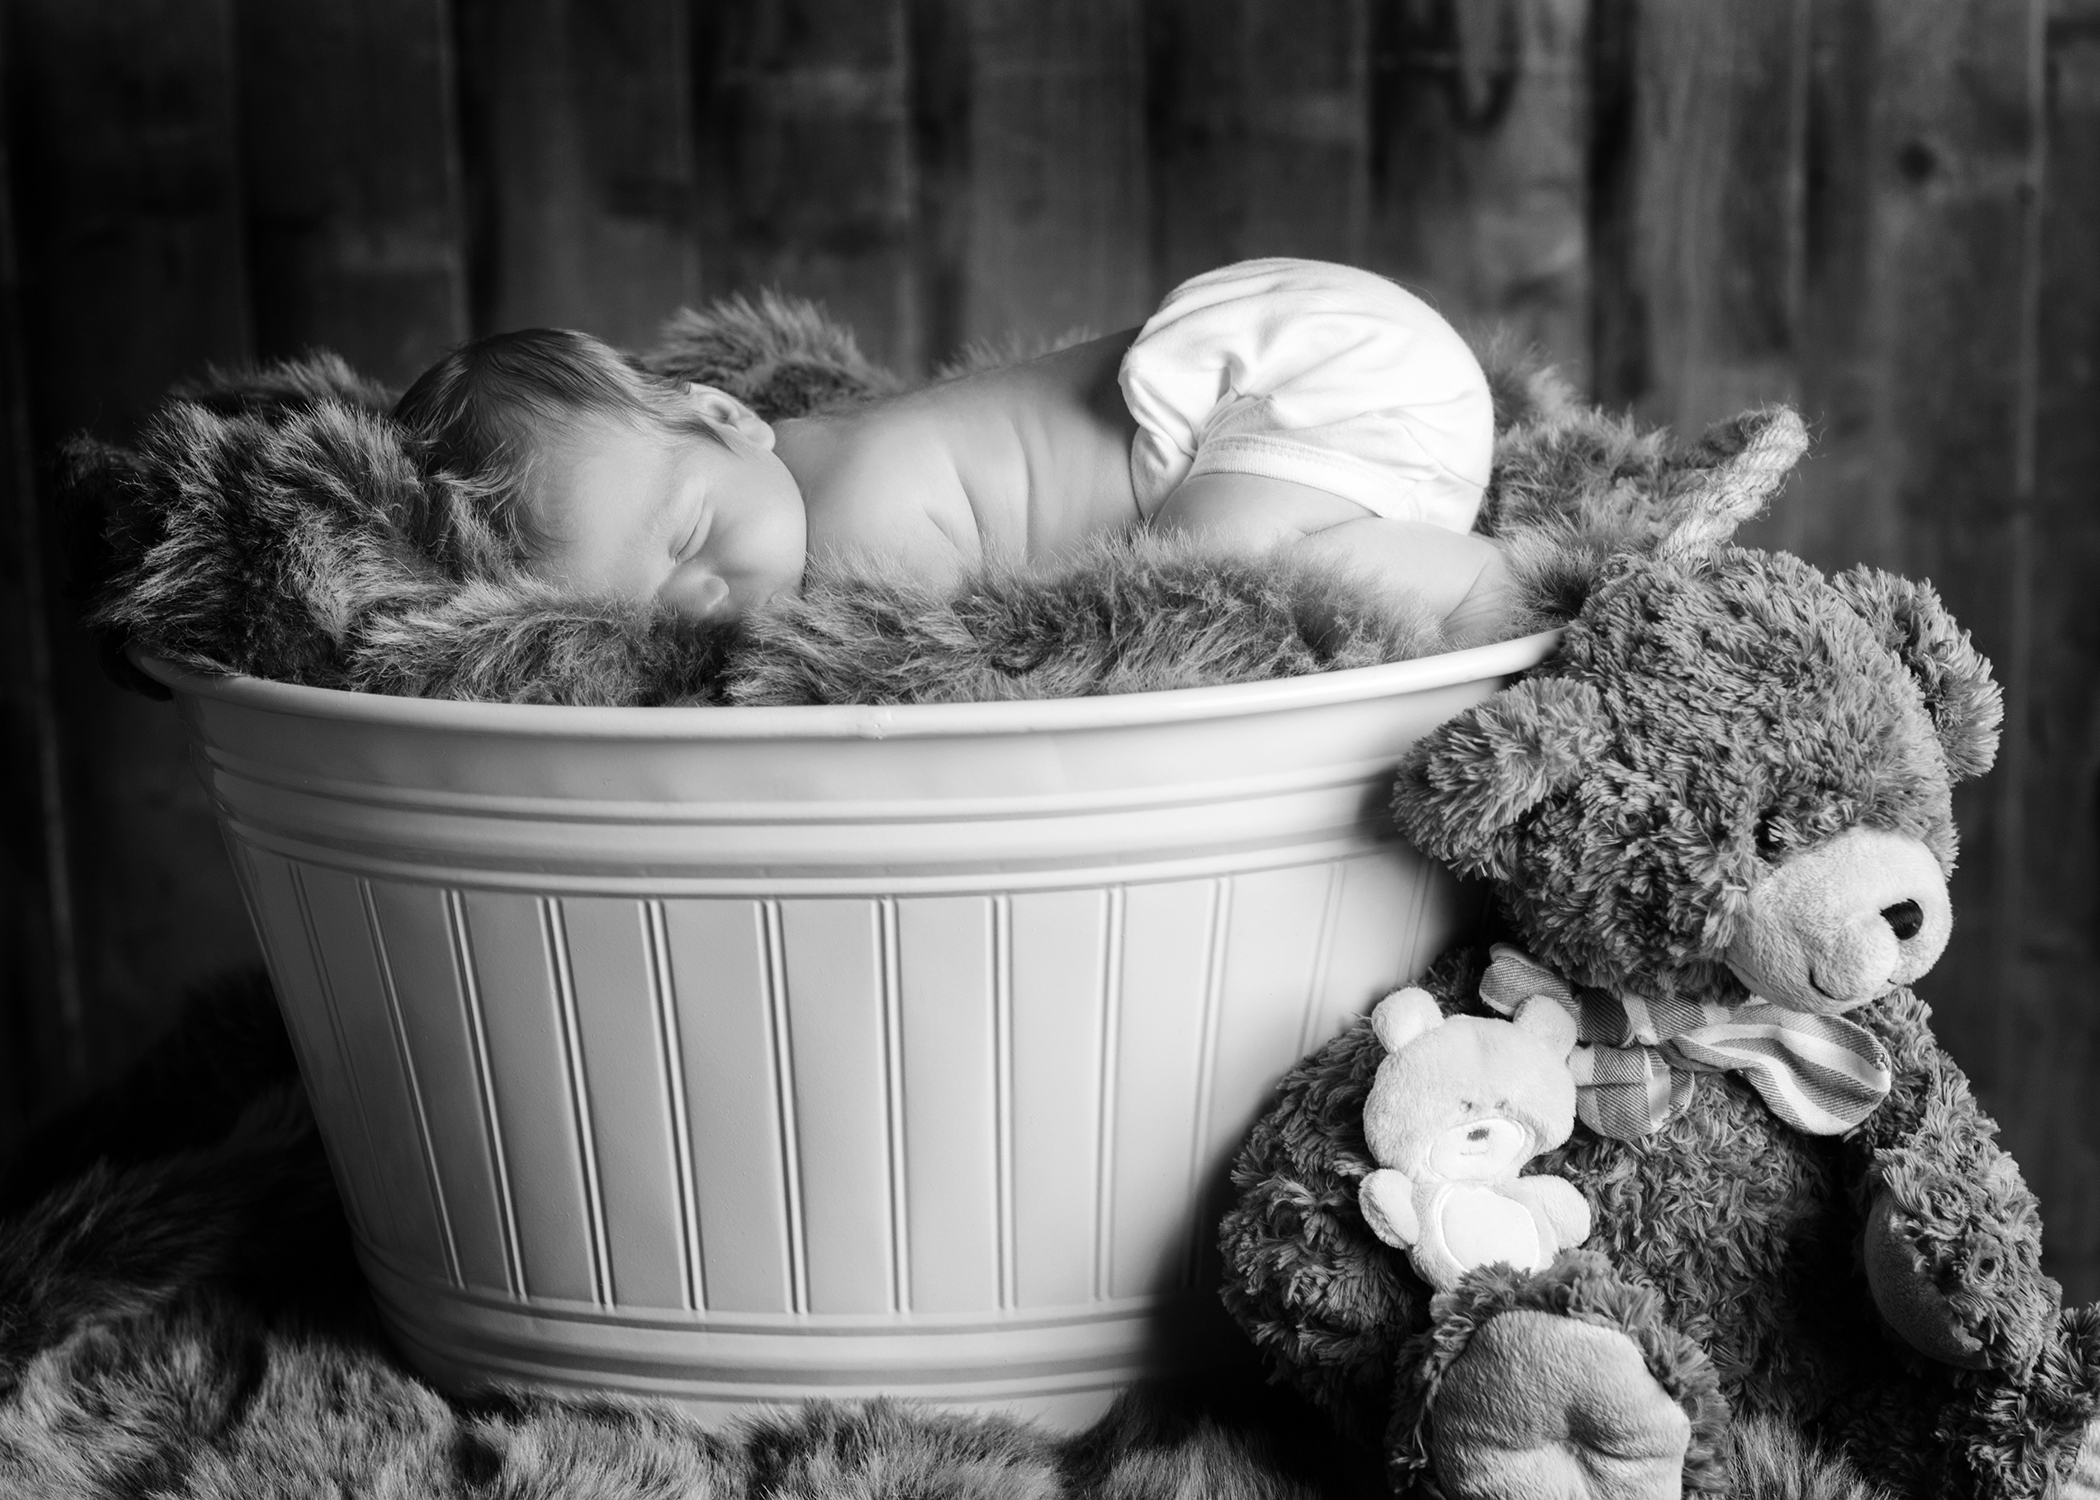 black and white studio shot of baby sleeping on top of fluffy rug in old vintage white metal wash tub with teddy bear